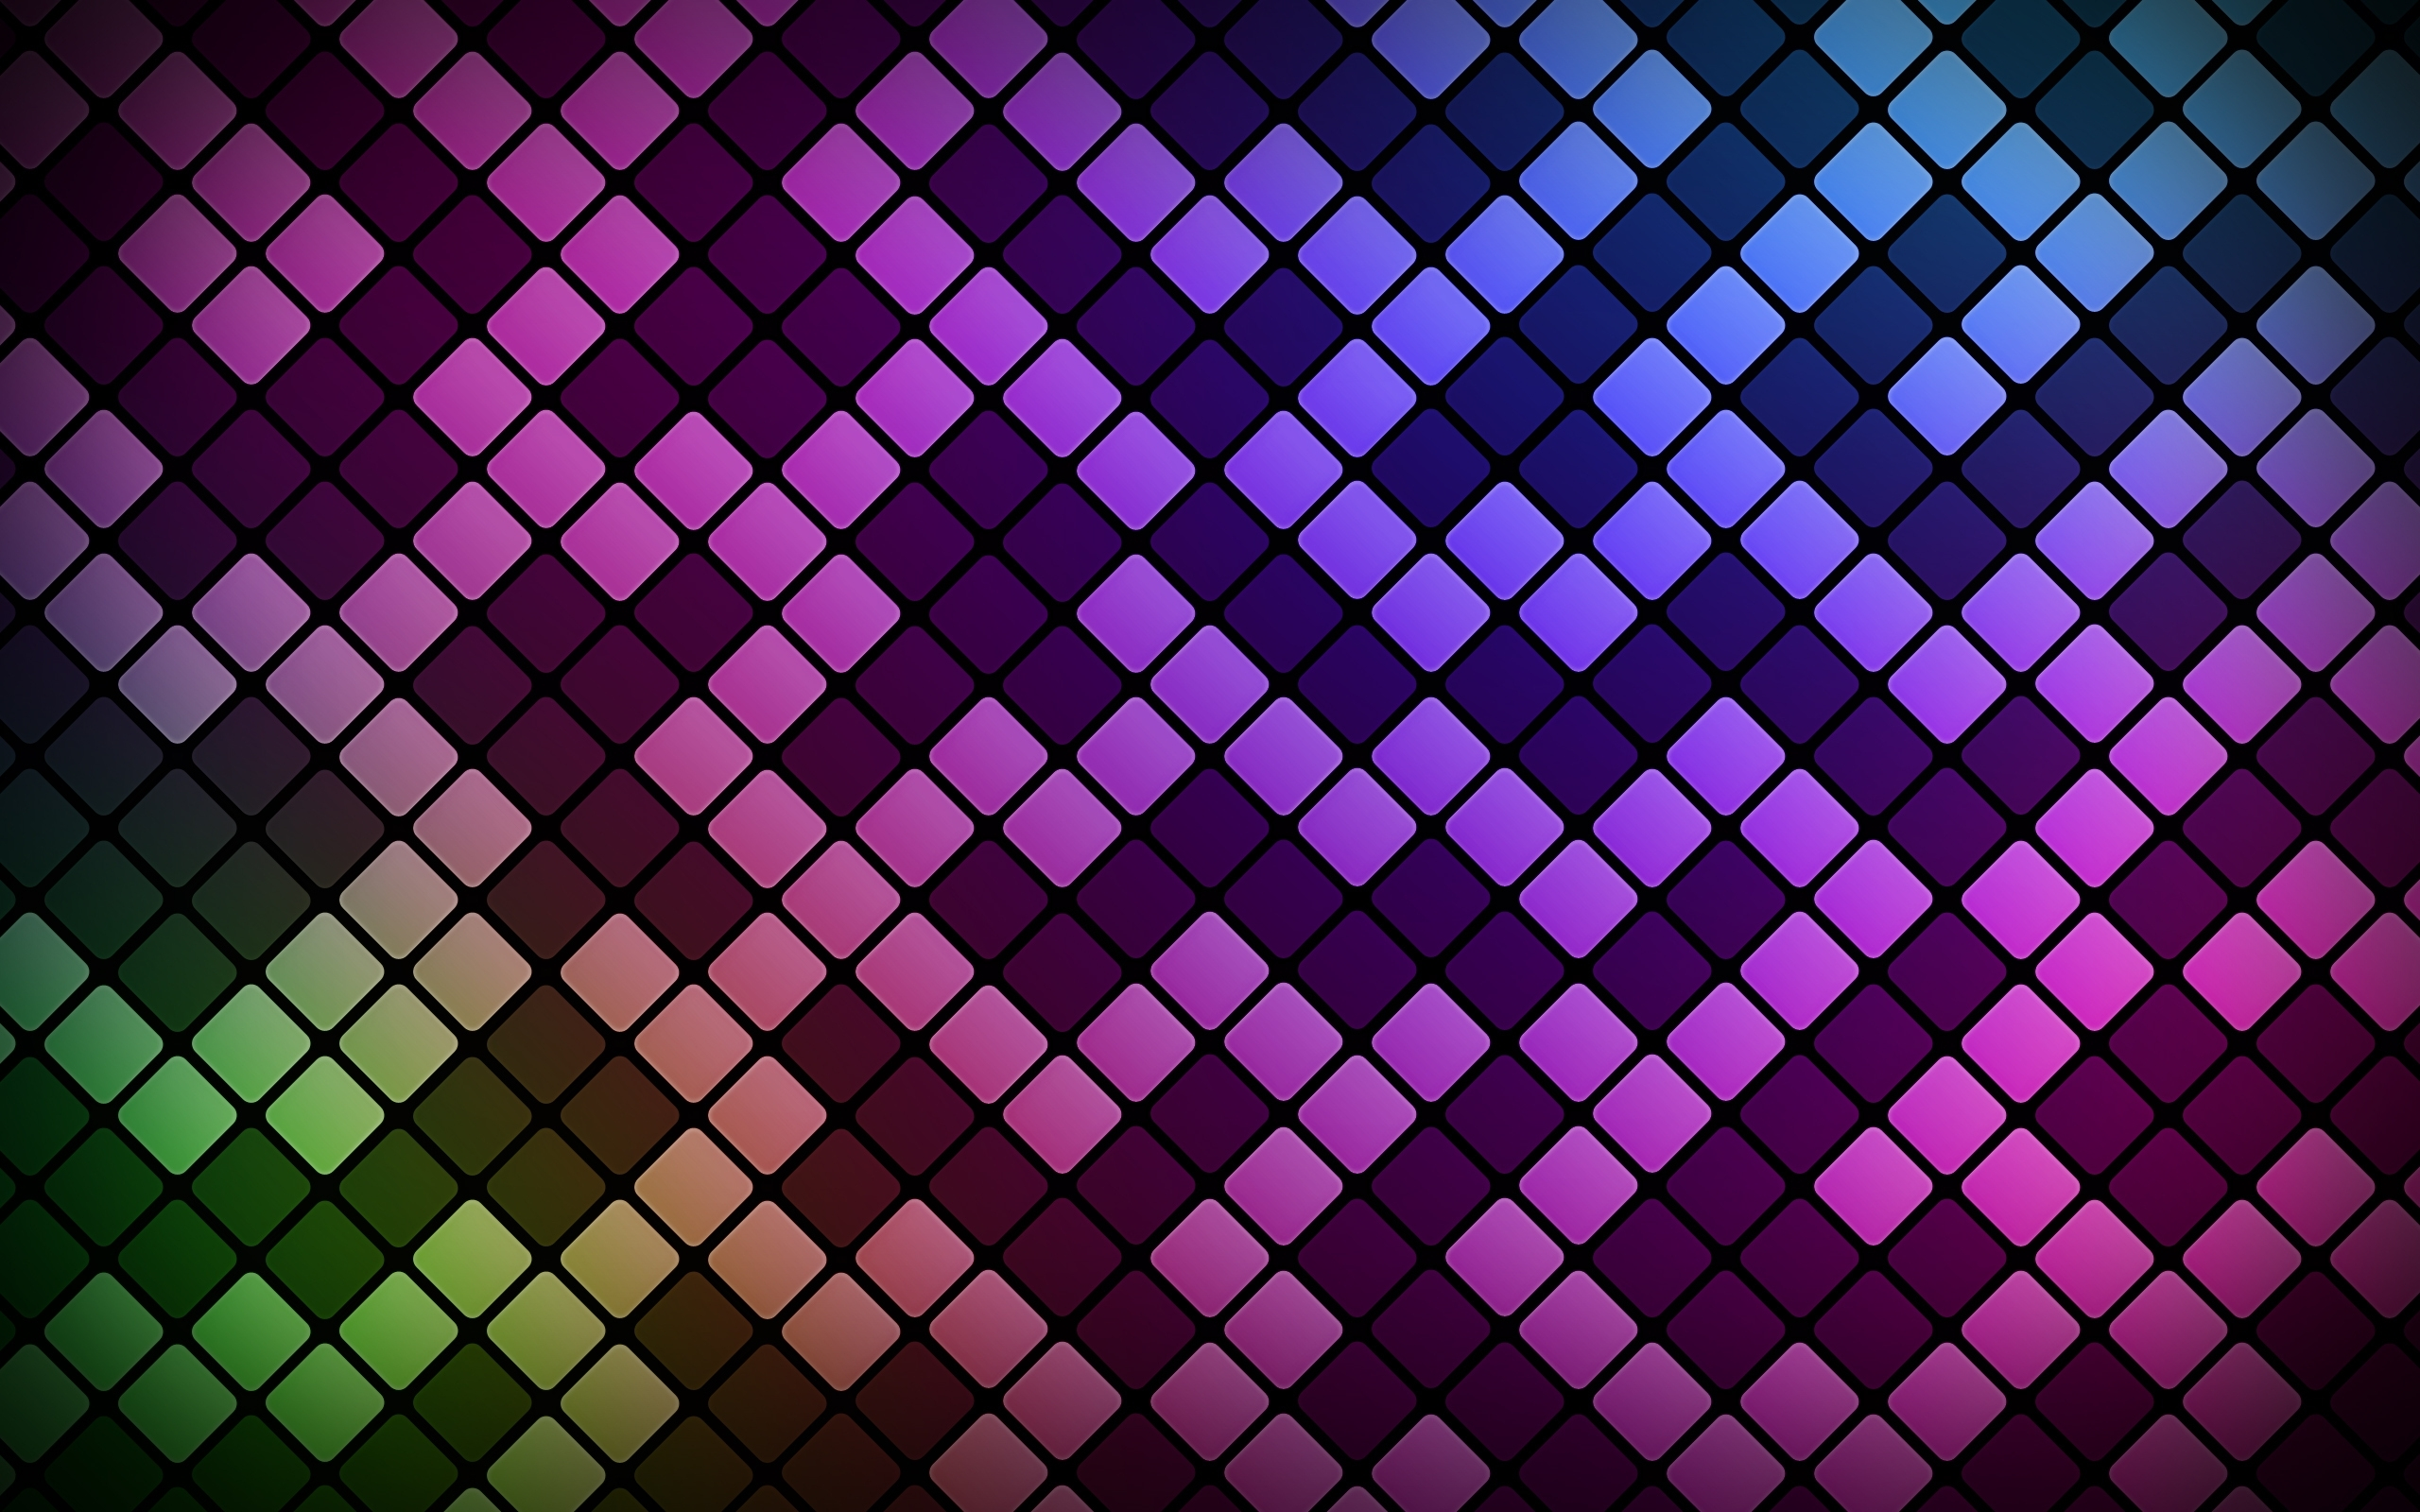 Neon Green And Neon Purple Backgrounds 2560x1600